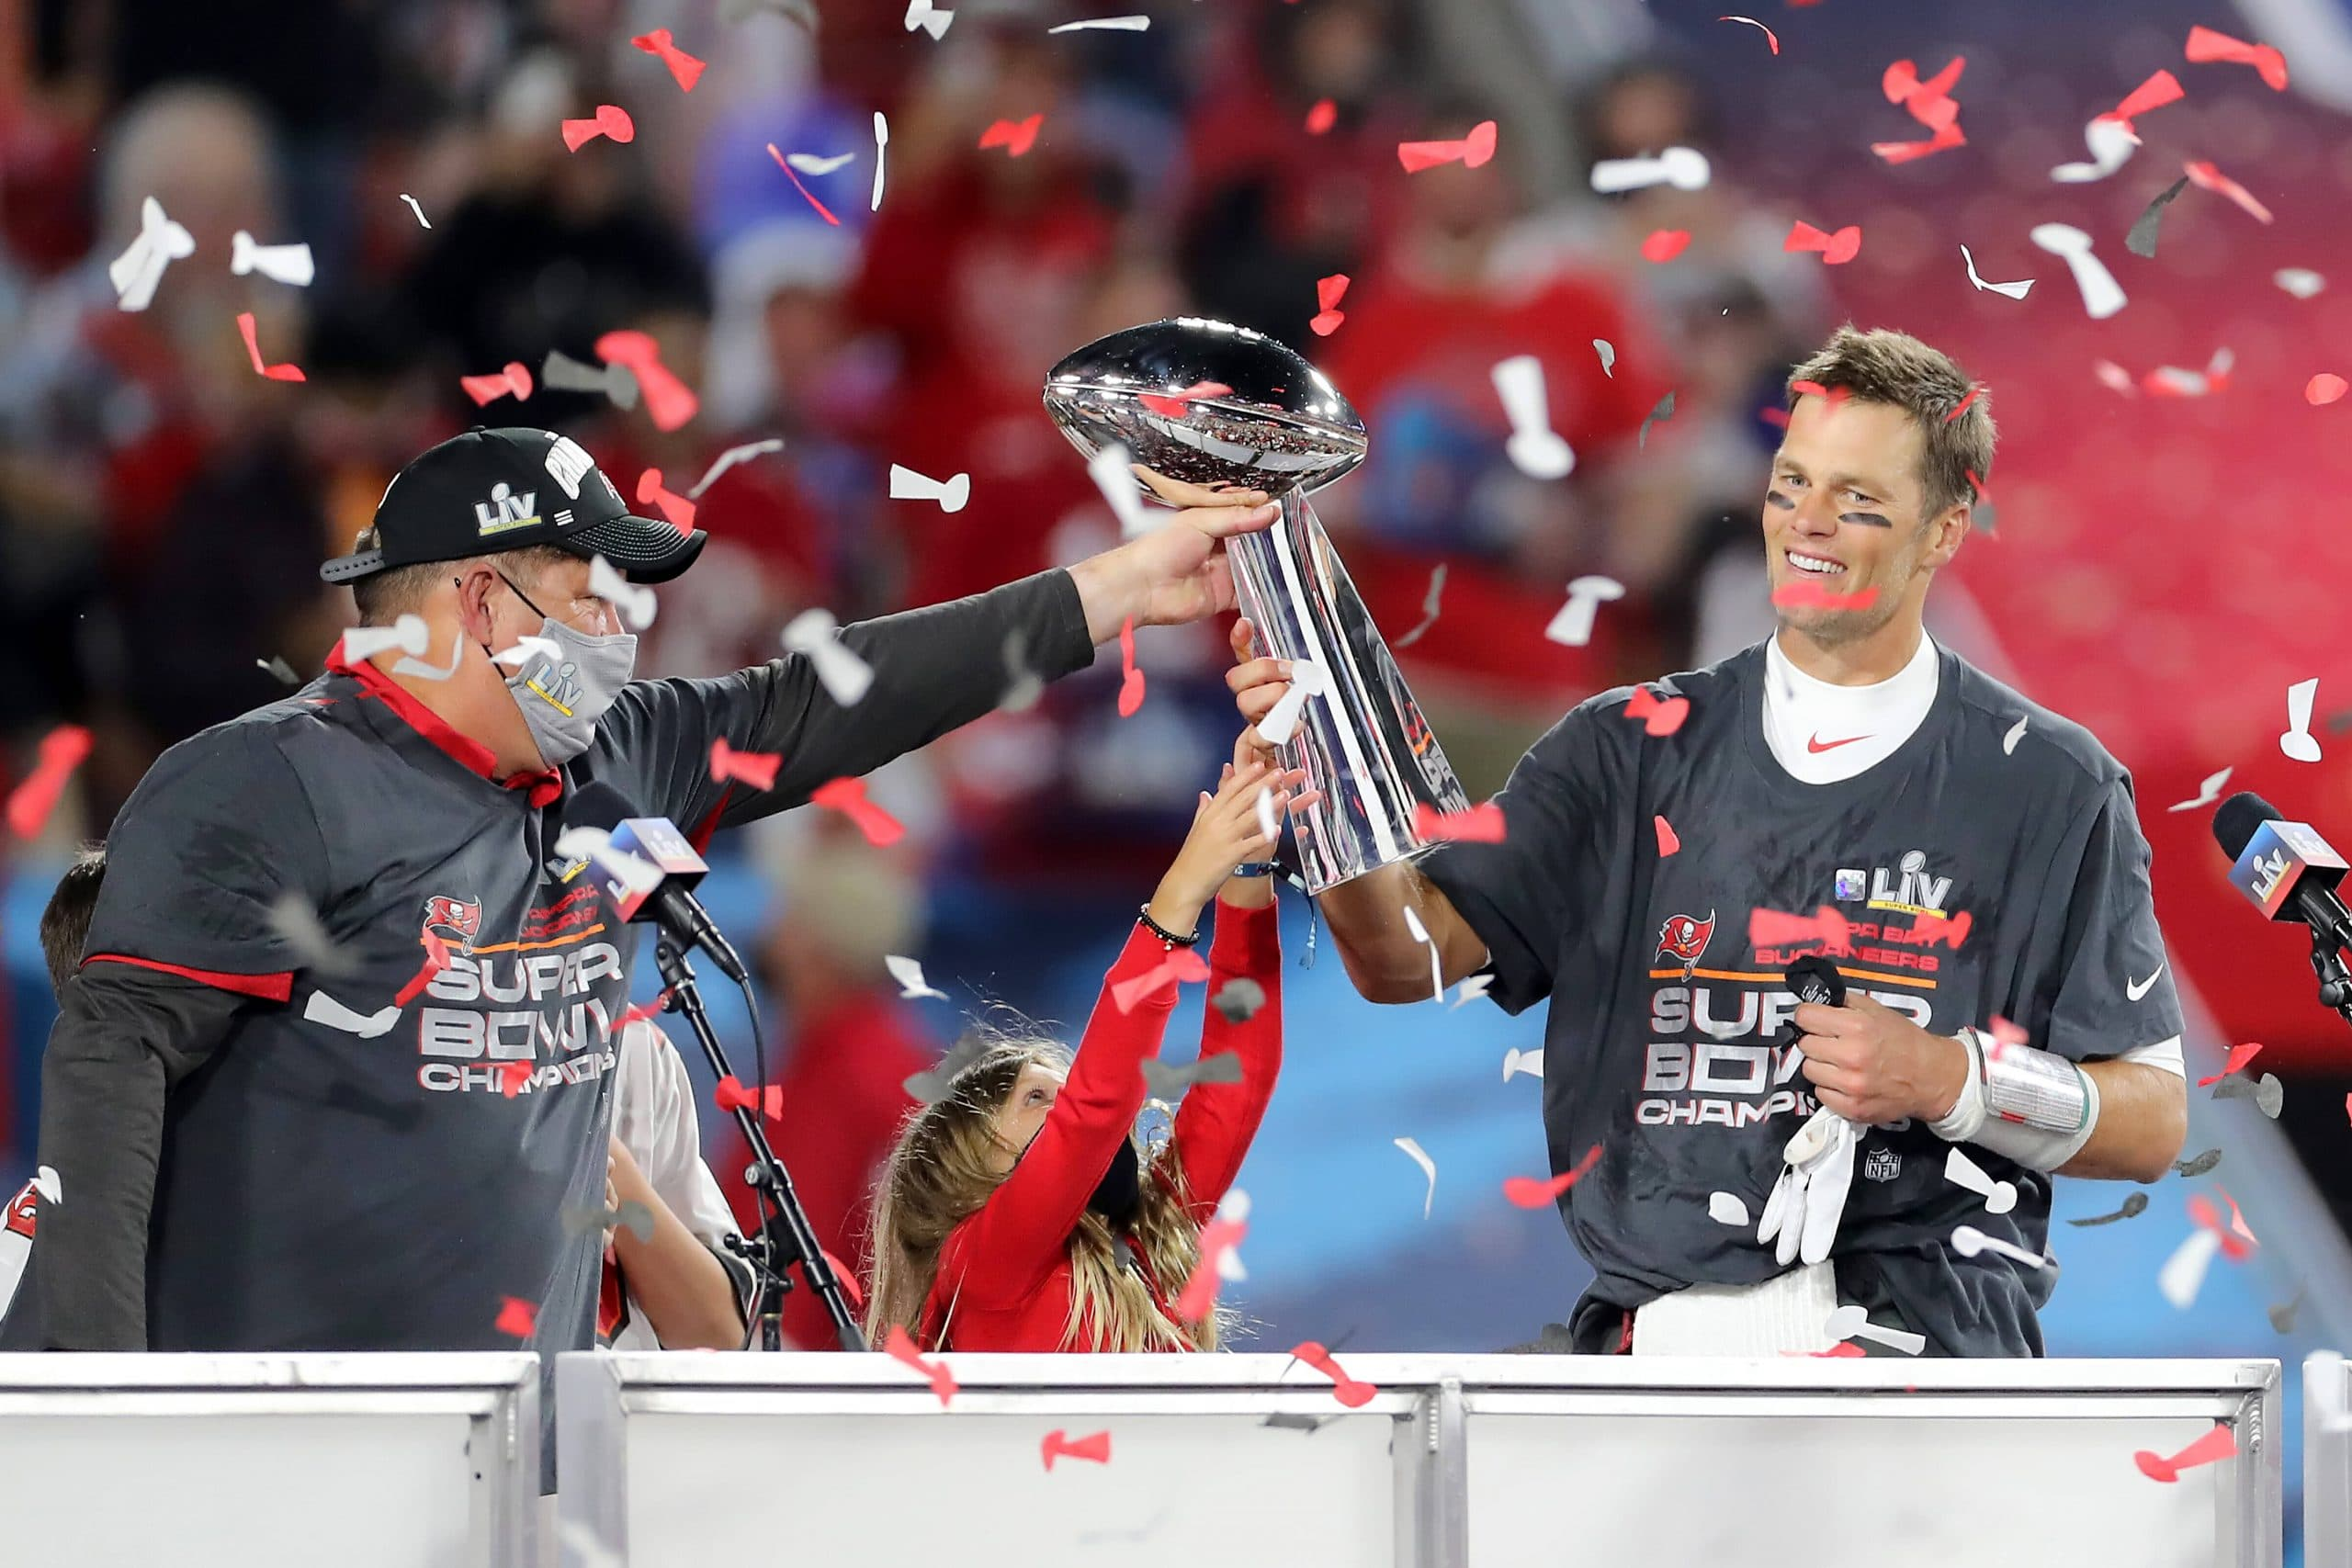 TAMPA, FL - FEBRUARY 07: Super Bowl MVP Tom Brady (12) of the Buccaneers accepts the Lombardi Trophy from General Manage